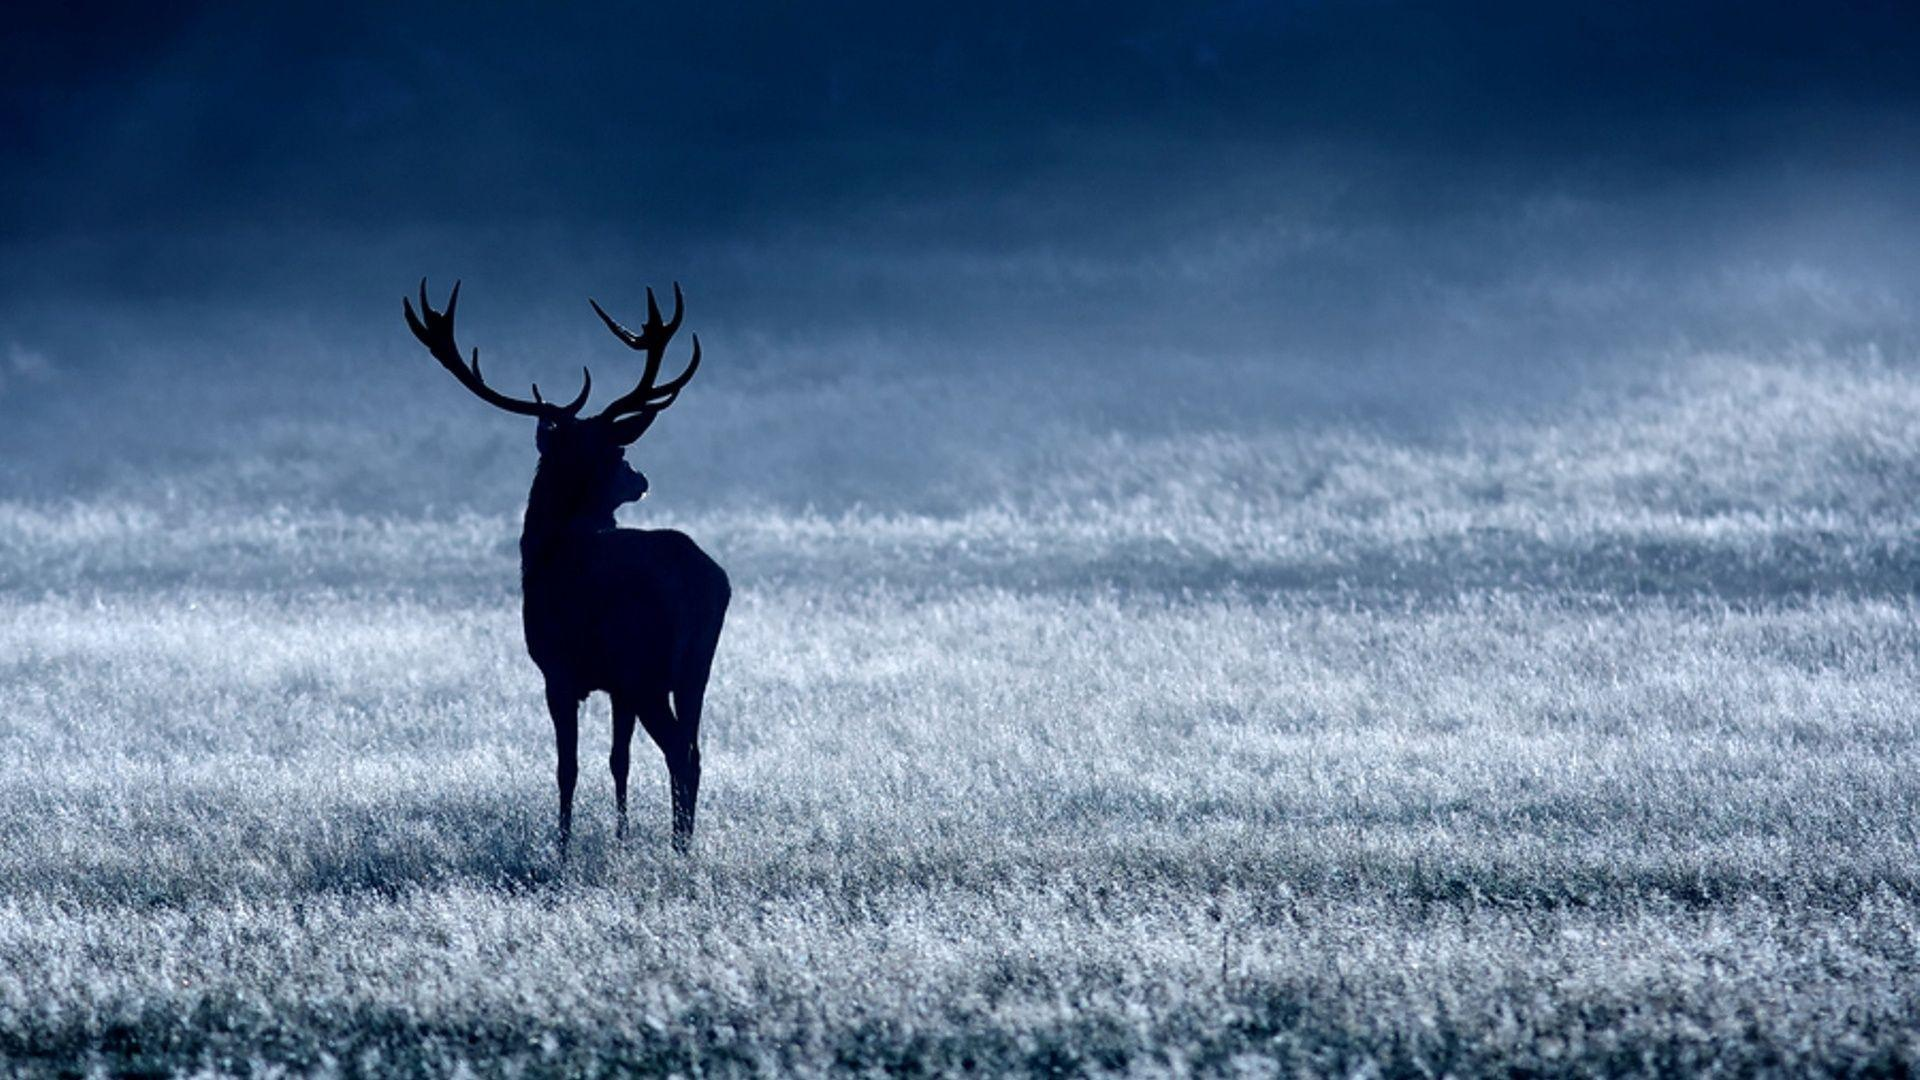 animal deer wallpaper 1920x1080 - photo #40